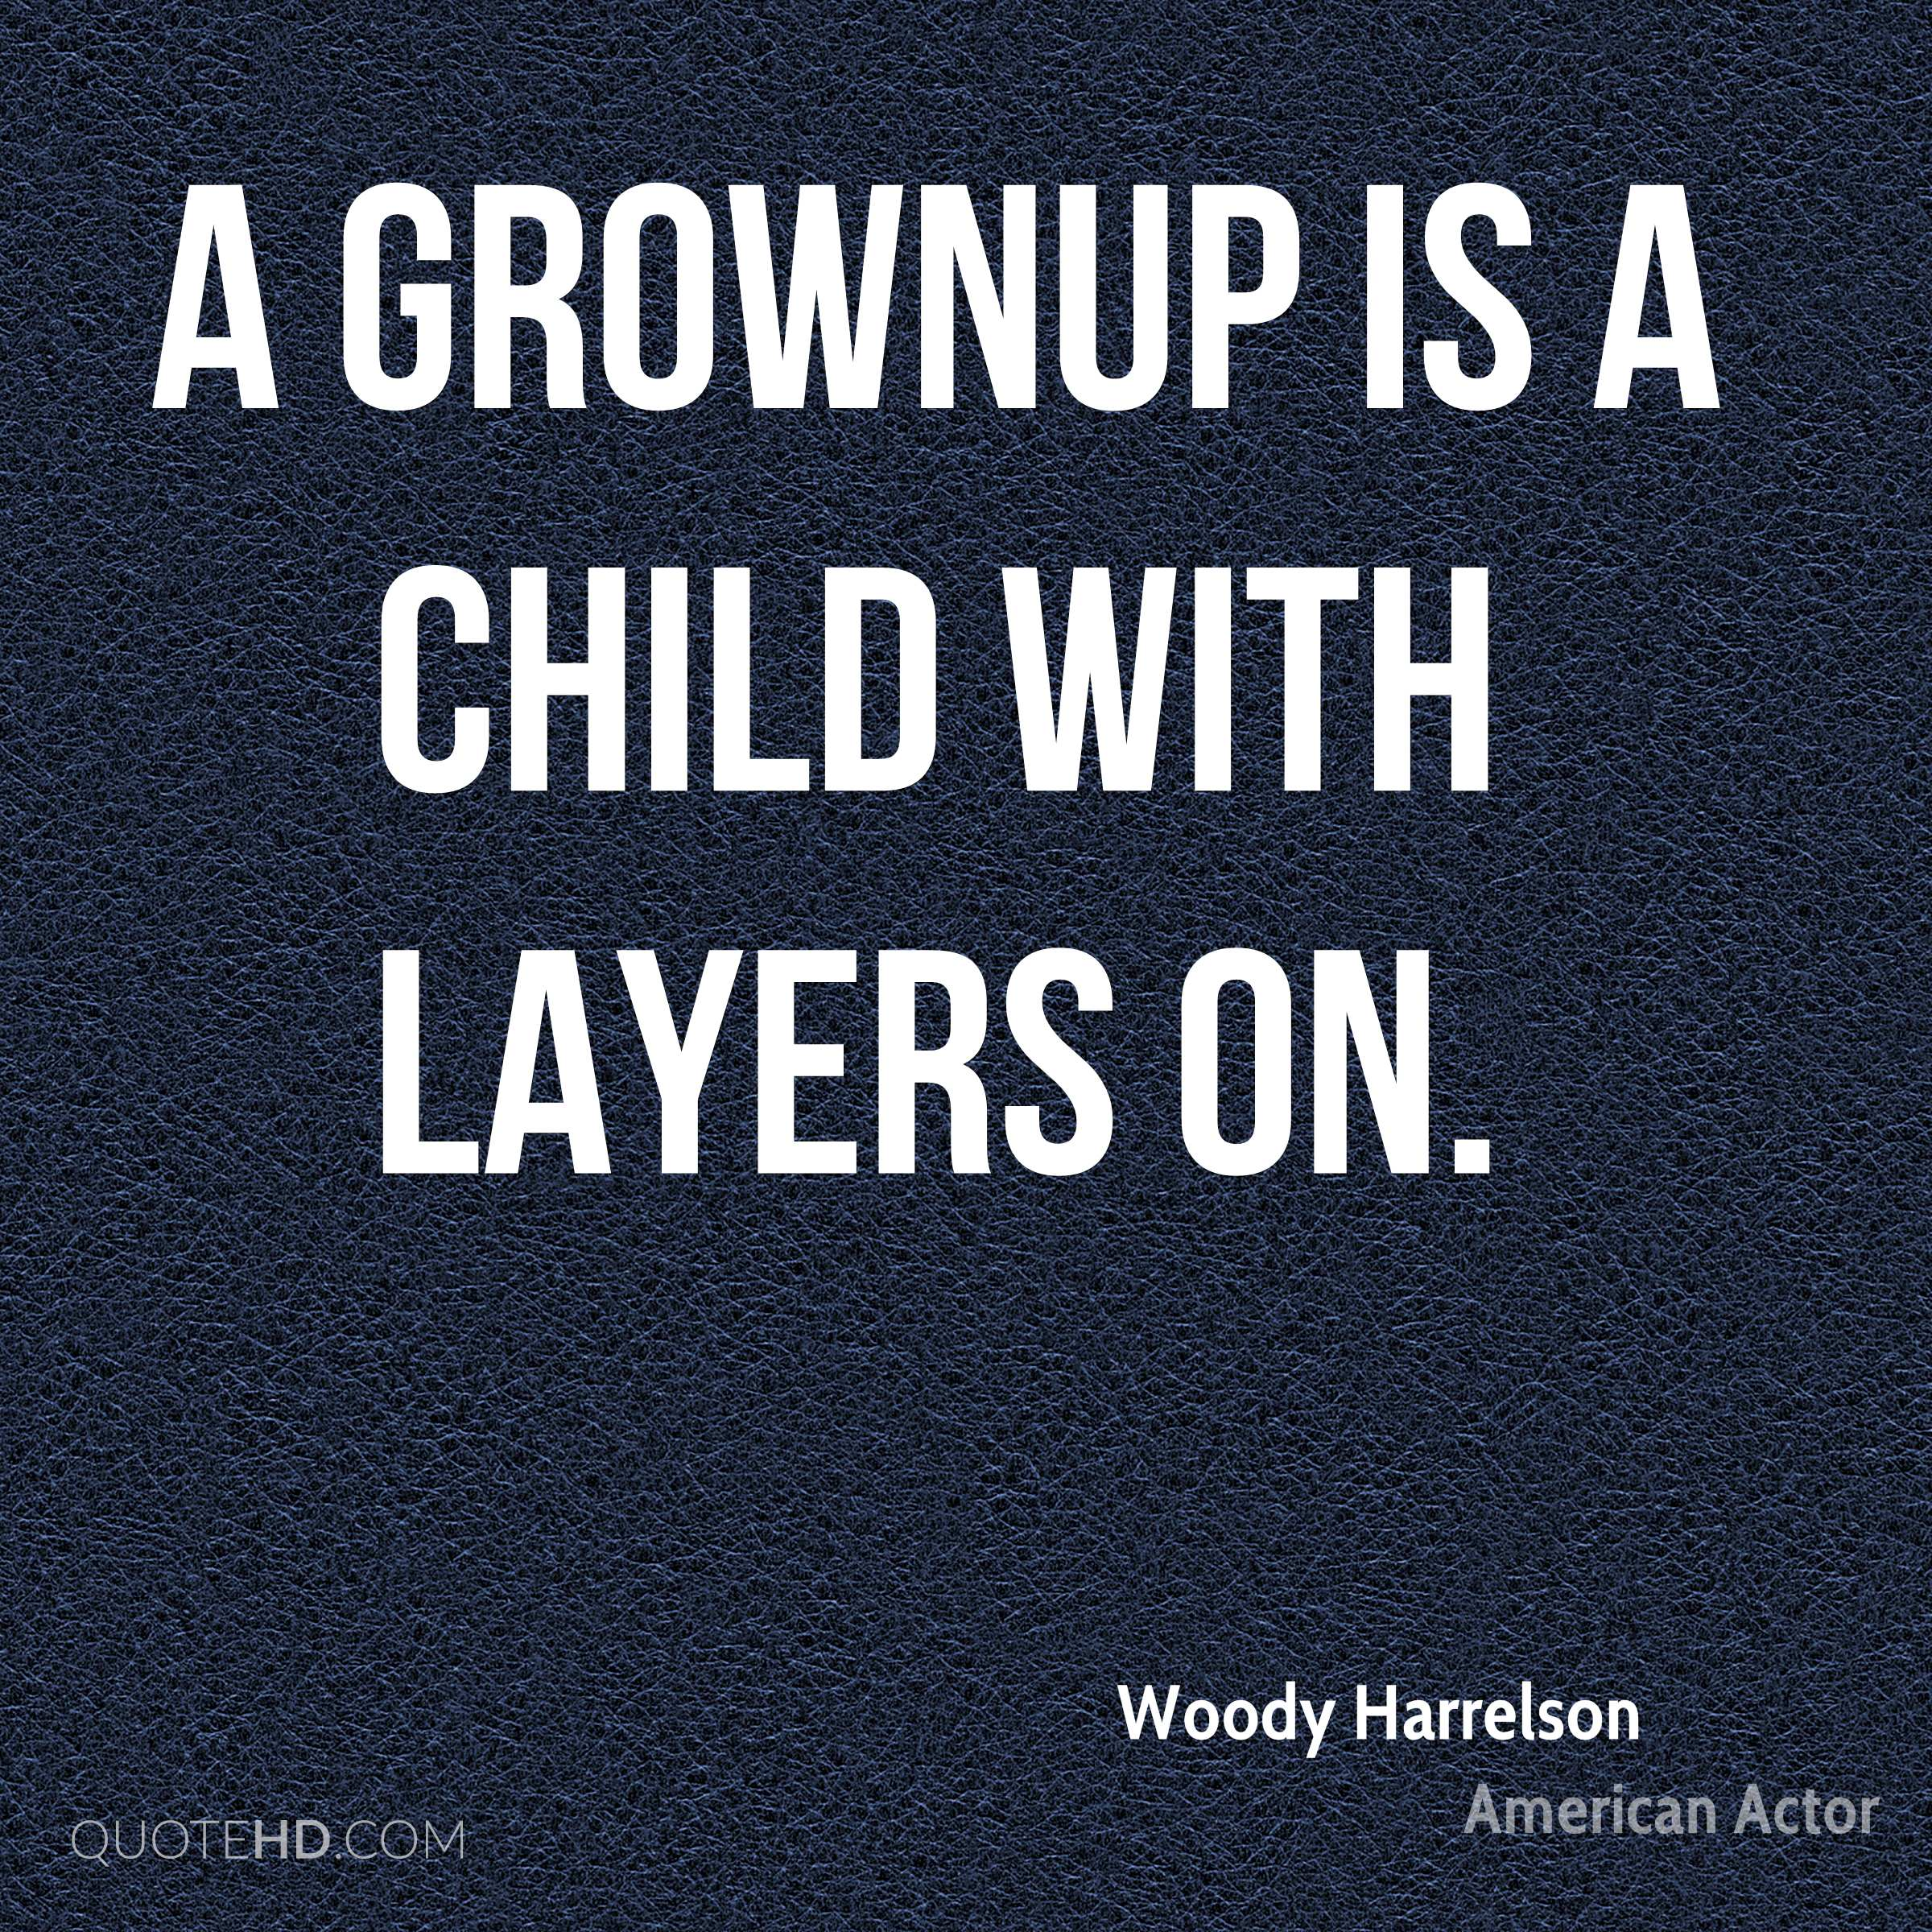 A grownup is a child with layers on.